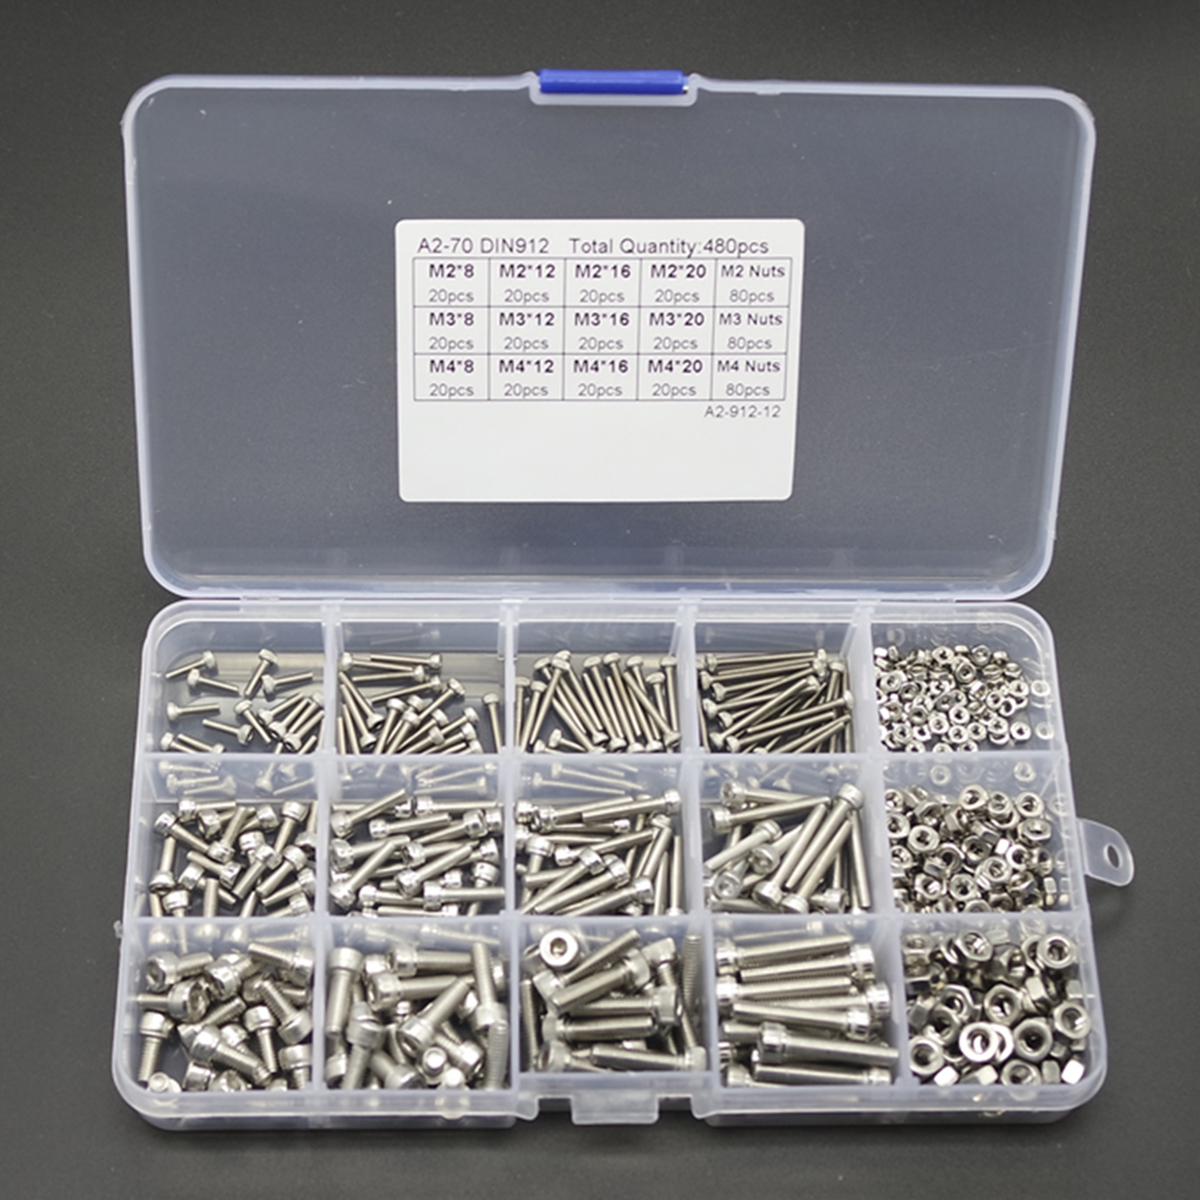 480pcs New Hex Socket Screws M2 M3 M4 Stainless Steel Head Cap Screw Nut Set With Box